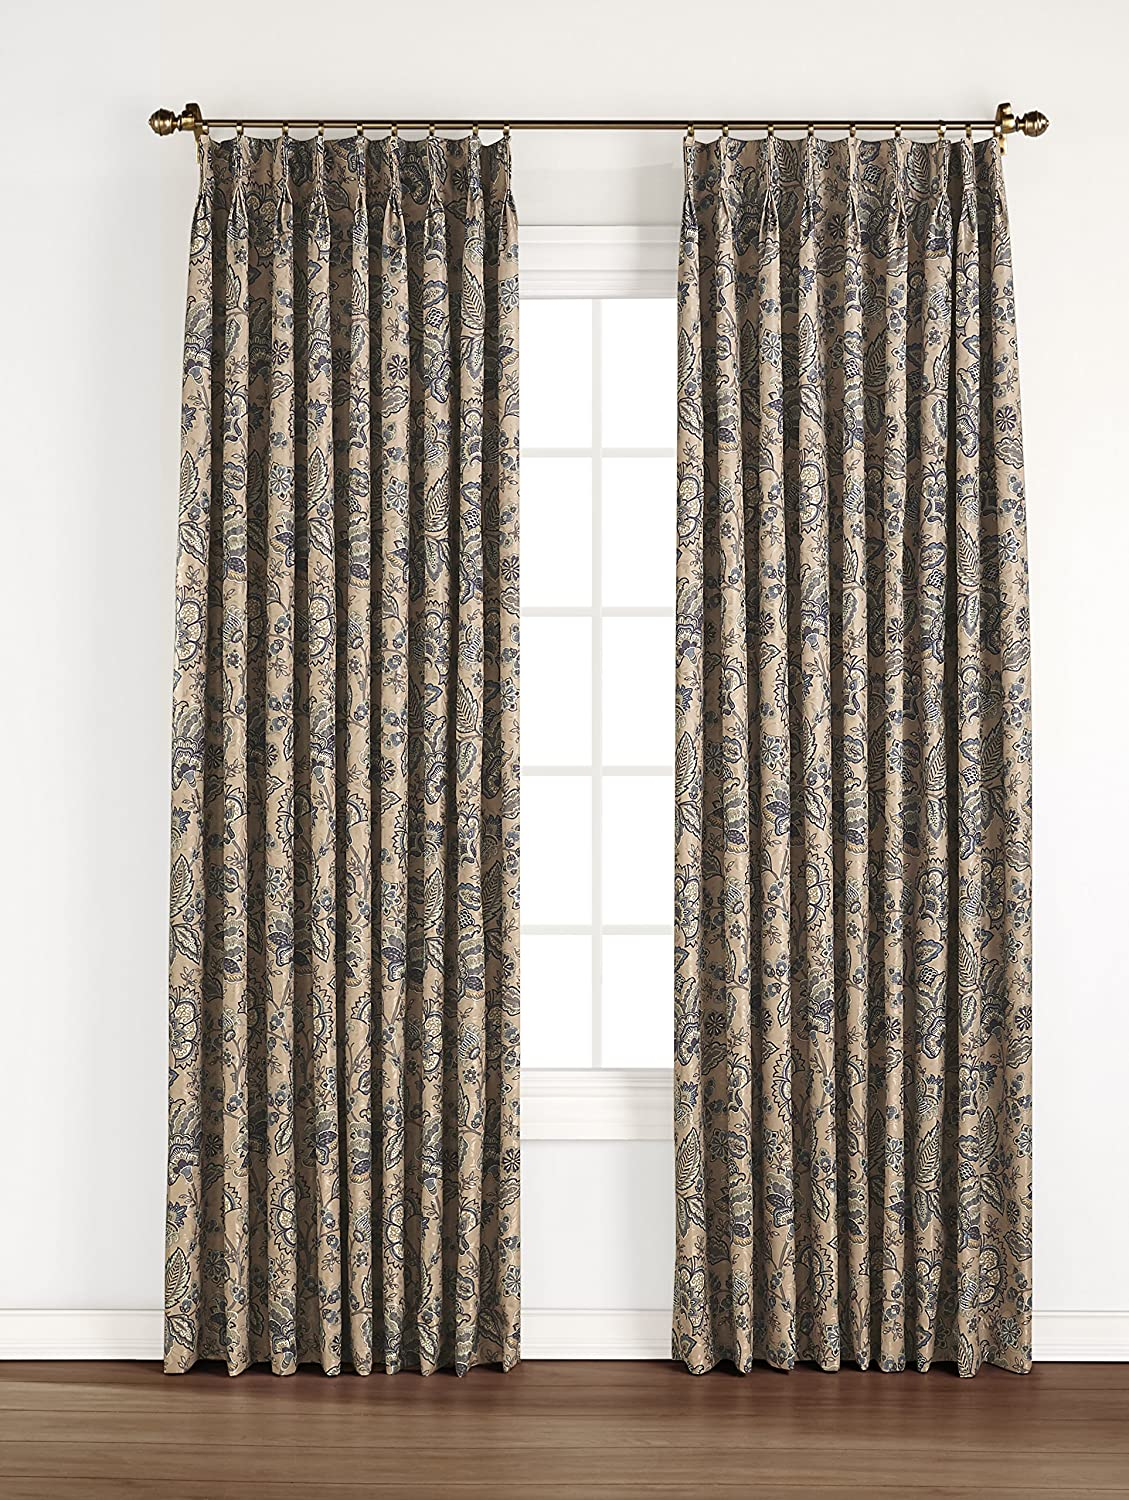 Stylemaster Home Products Renaissance Home Fashion Monique Pinch Pleated Foam Back Drape Pair, 48 by 84-Inch, Taupe